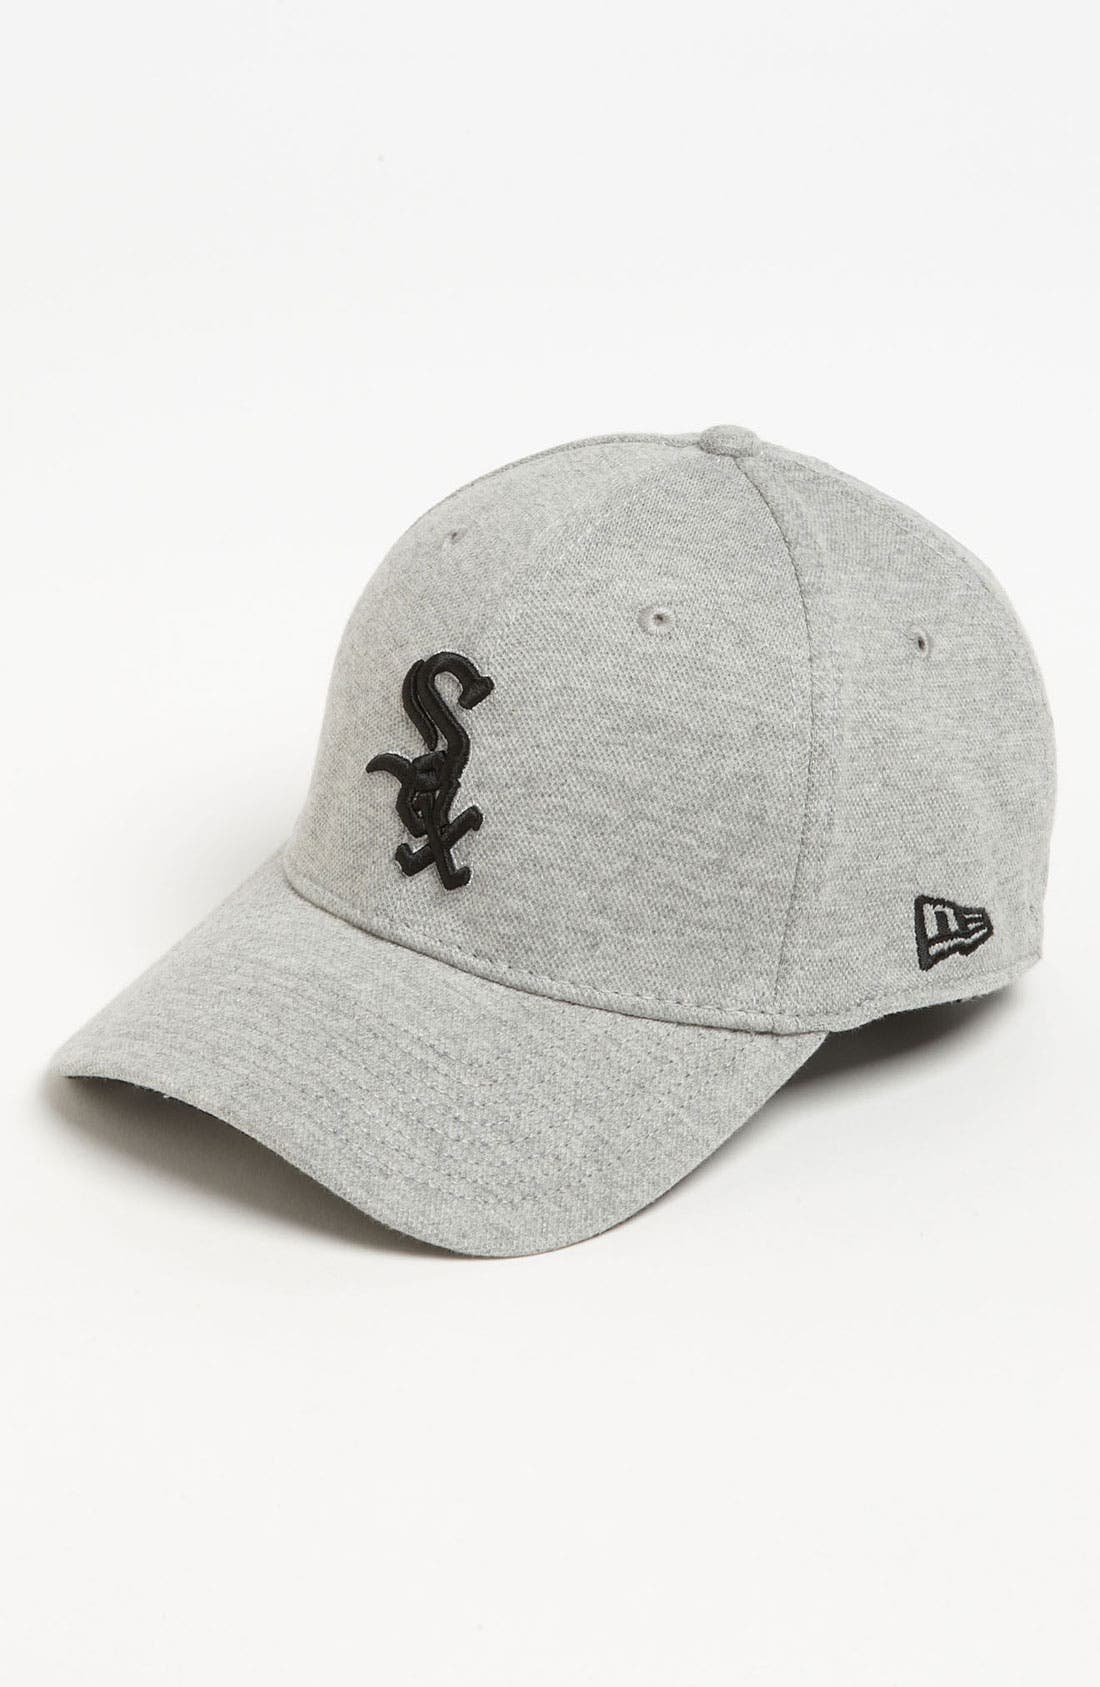 Alternate Image 1 Selected - New Era Cap 'Spring Stretch - Chicago White Sox' Baseball Cap